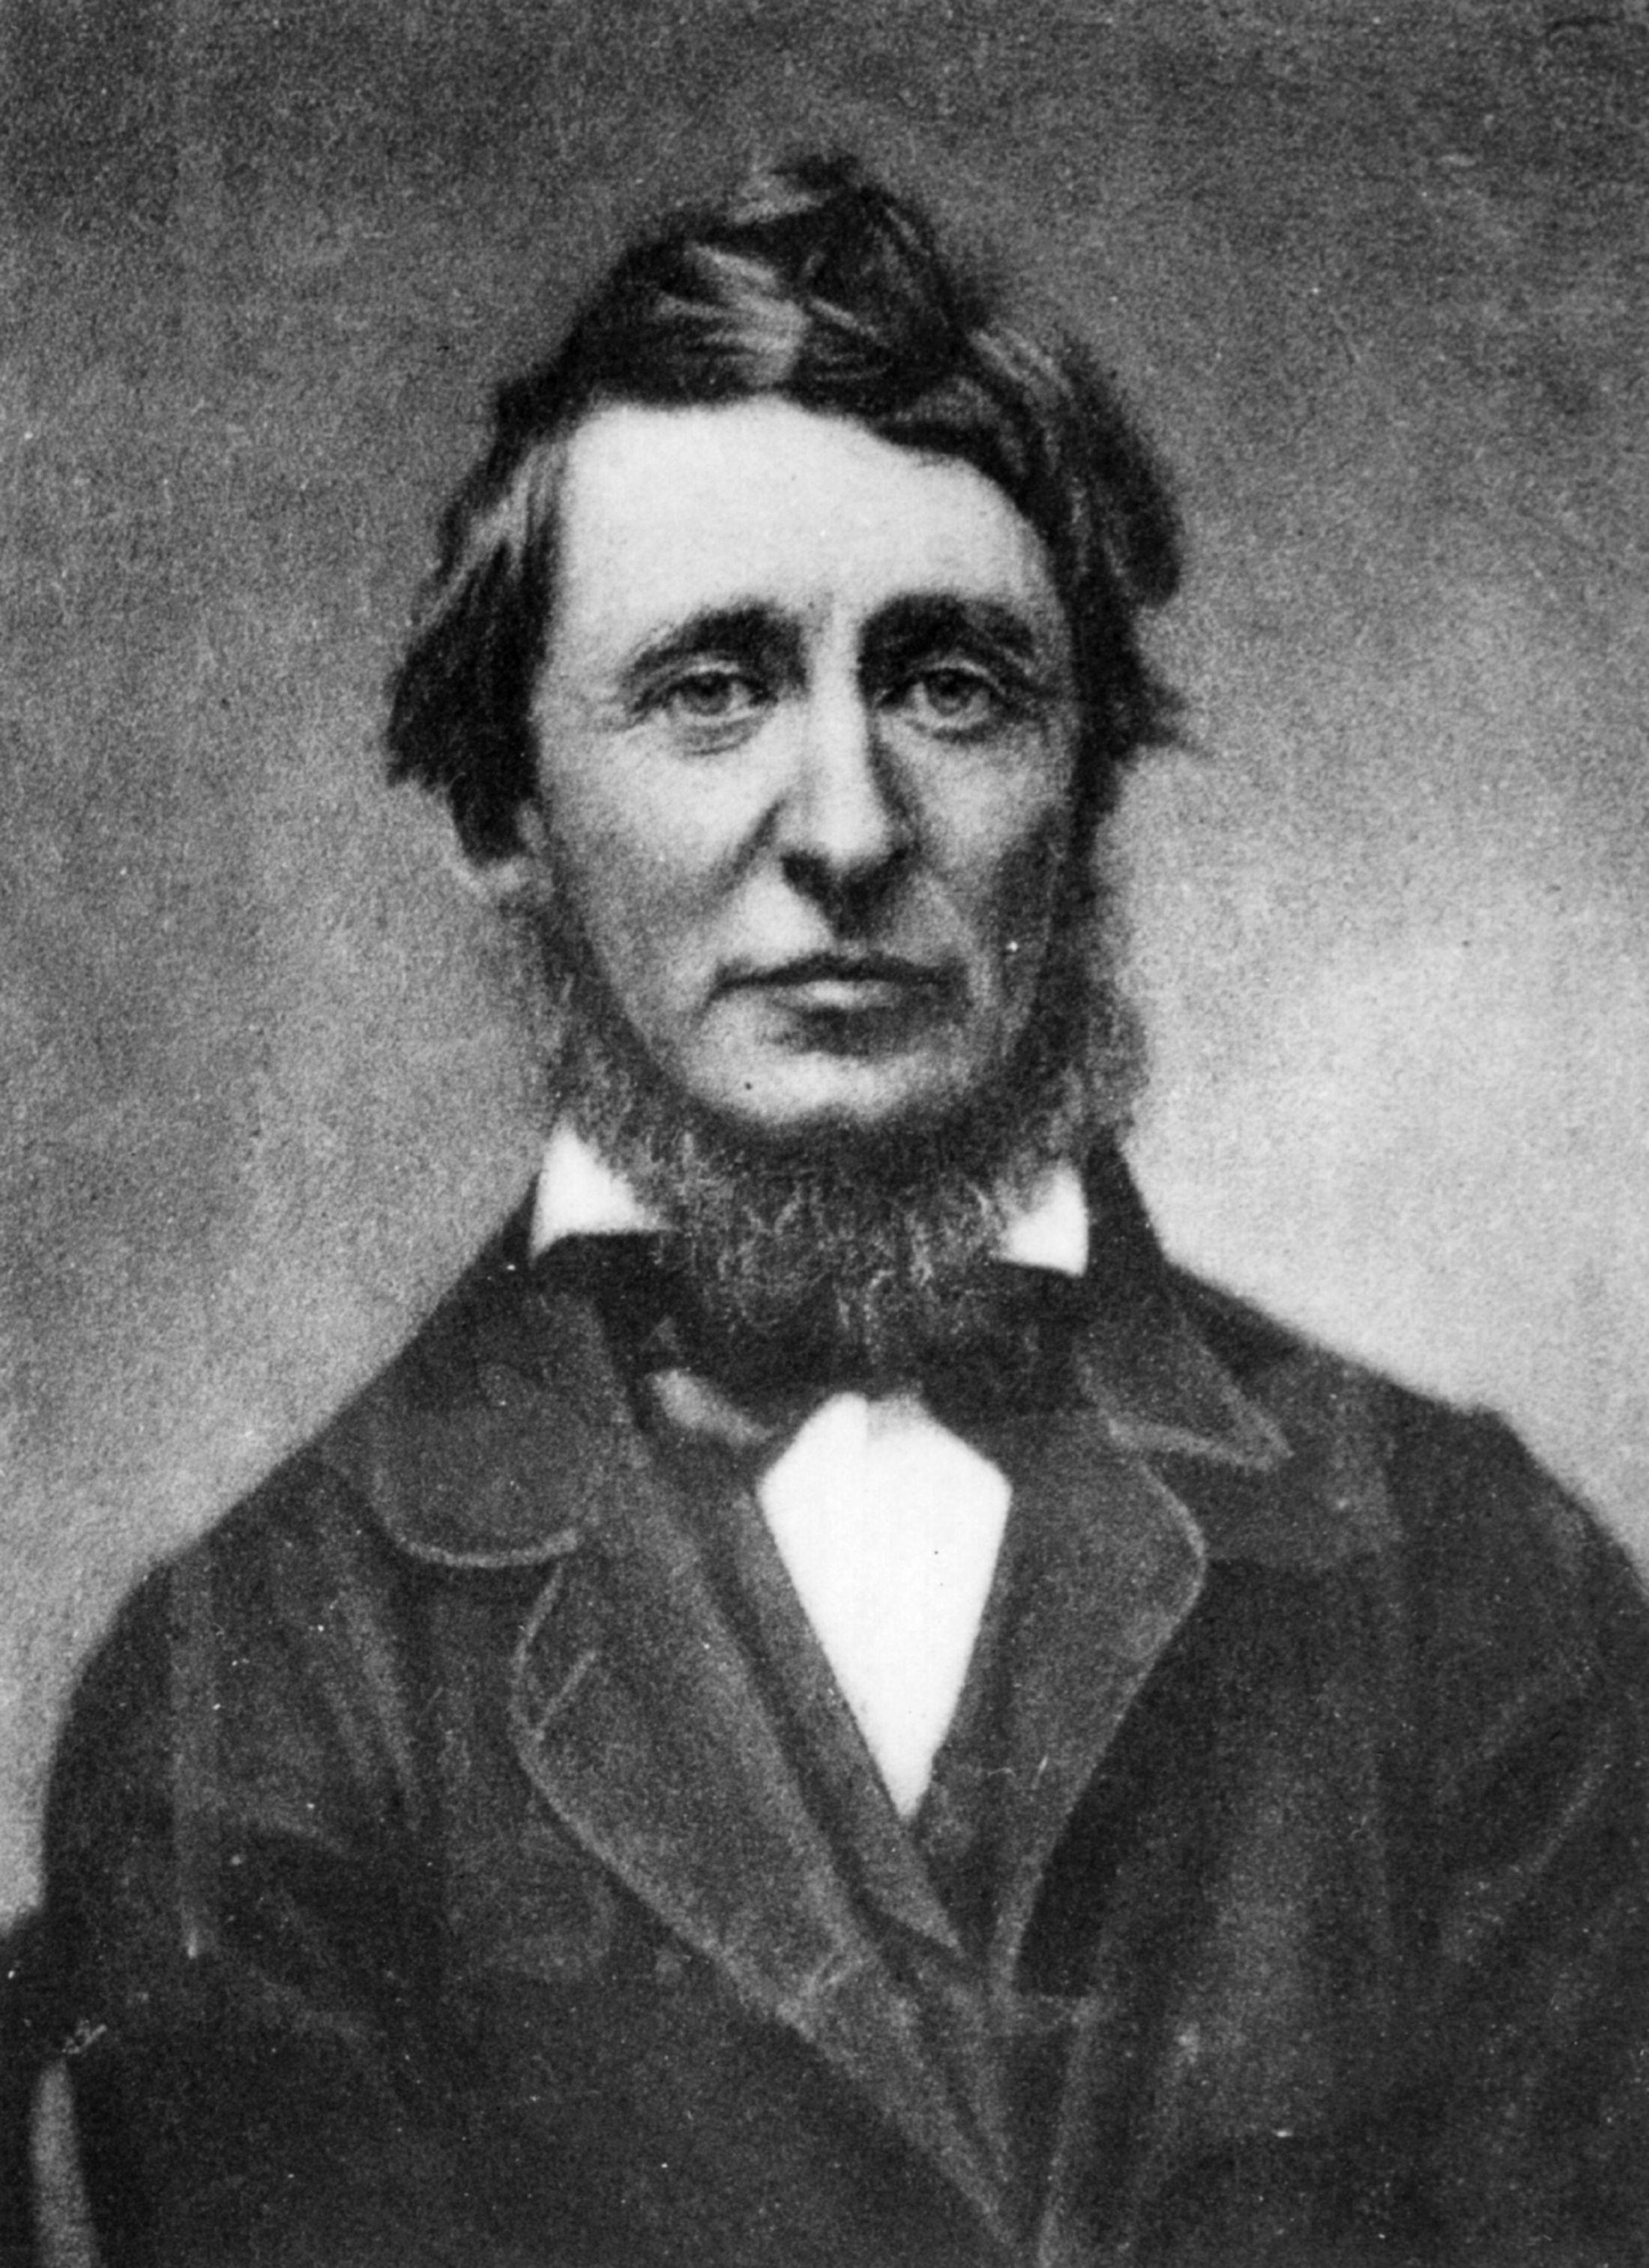 a biography of henry david thoreau an american author poet and philosopher Henry david thoreau (july 12, 1817 – may 6, 1862), born david henry thoreau was an american author, naturalist, pacifist, philosopher, and transcendentalistlike his peers ralph waldo emerson, bronson alcott, margaret fuller, and nathaniel hawthorne, thoreau believed nature to be an expression of god and a symbolic reflection of the.